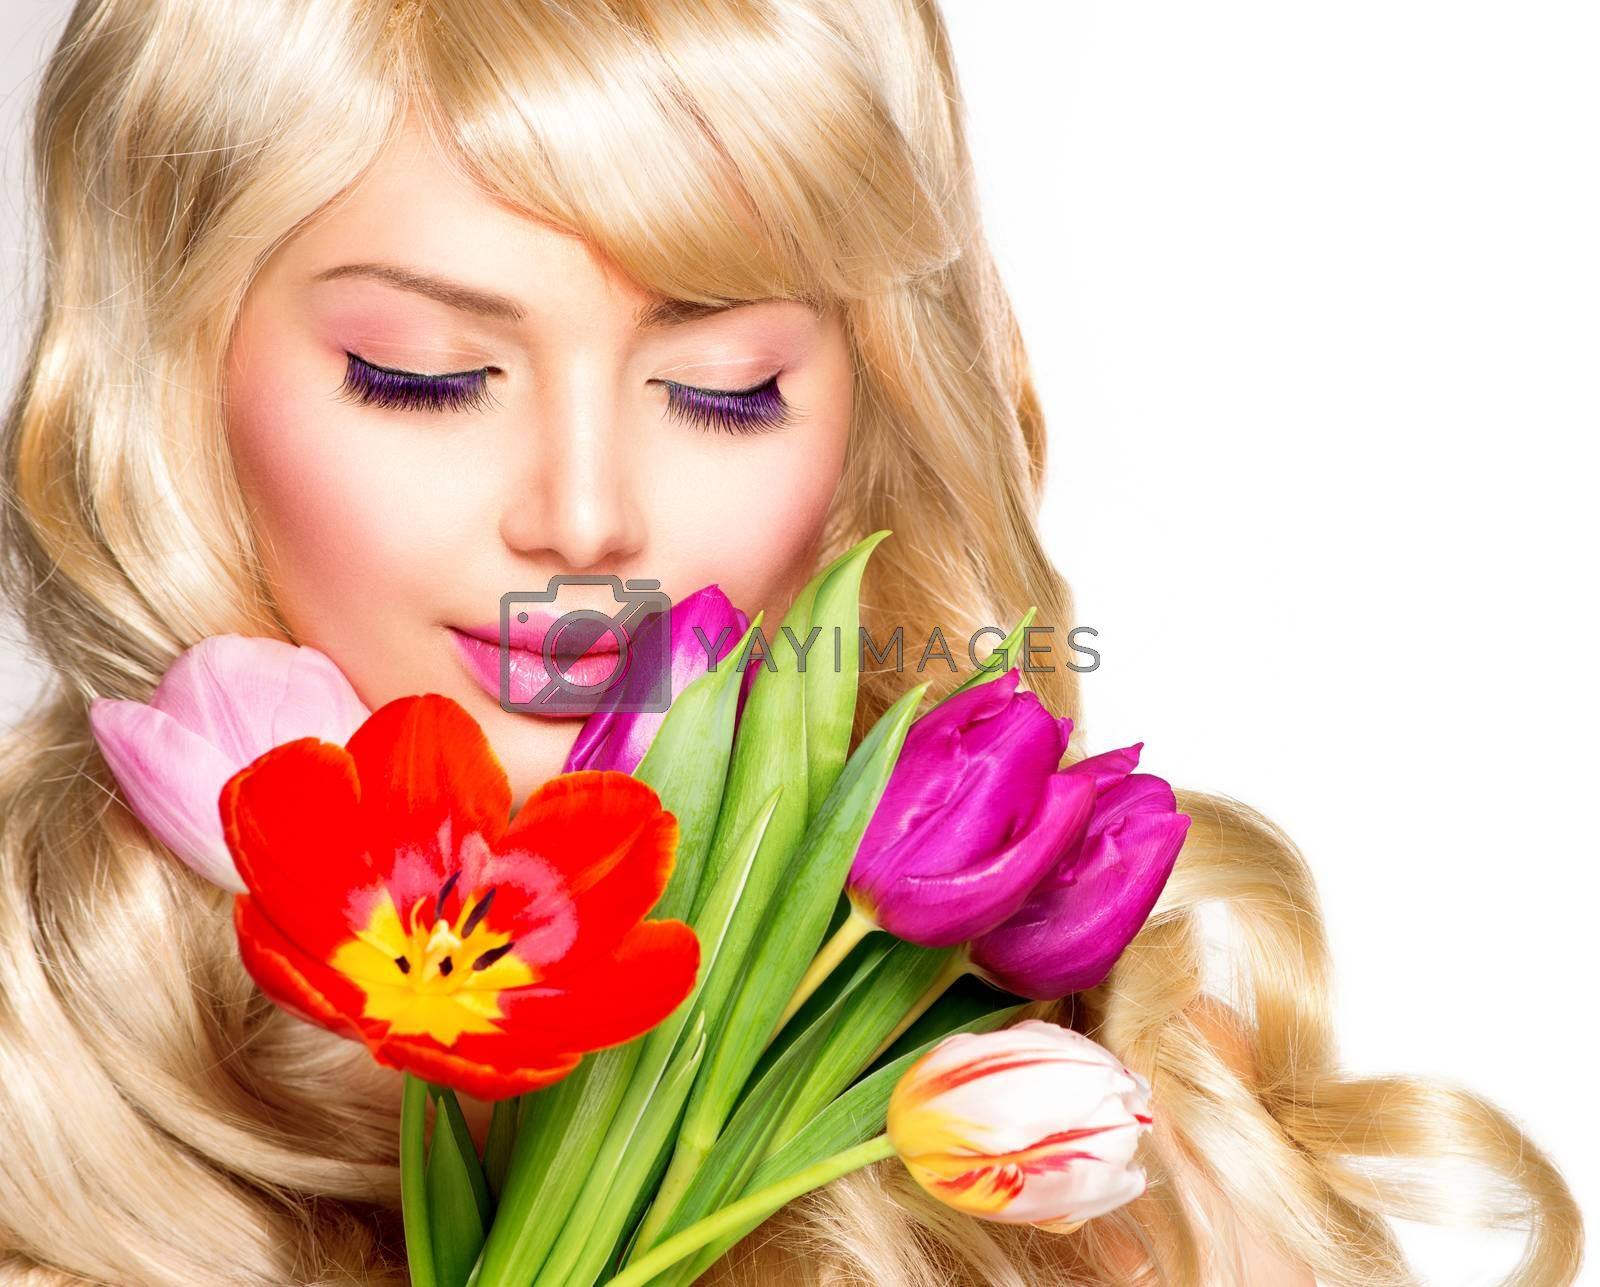 Beauty Woman with Spring Flower bouquet by SubbotinaA